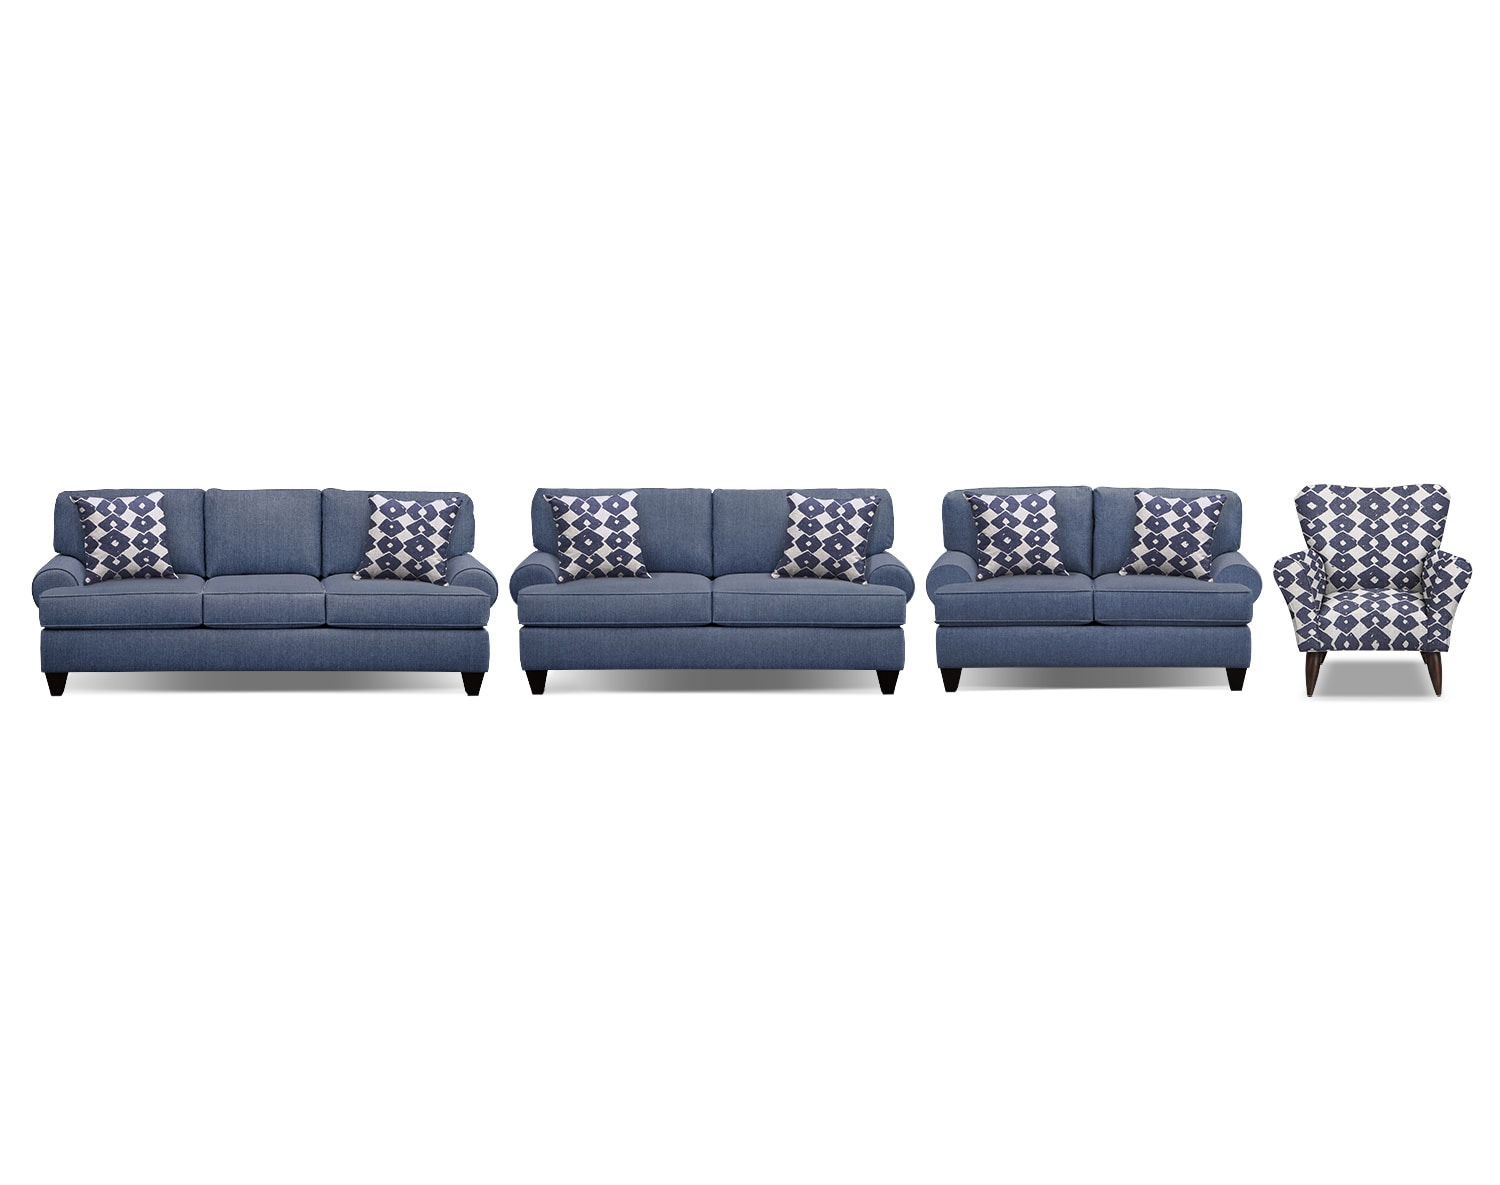 The Bailey Blue Living Room Collection